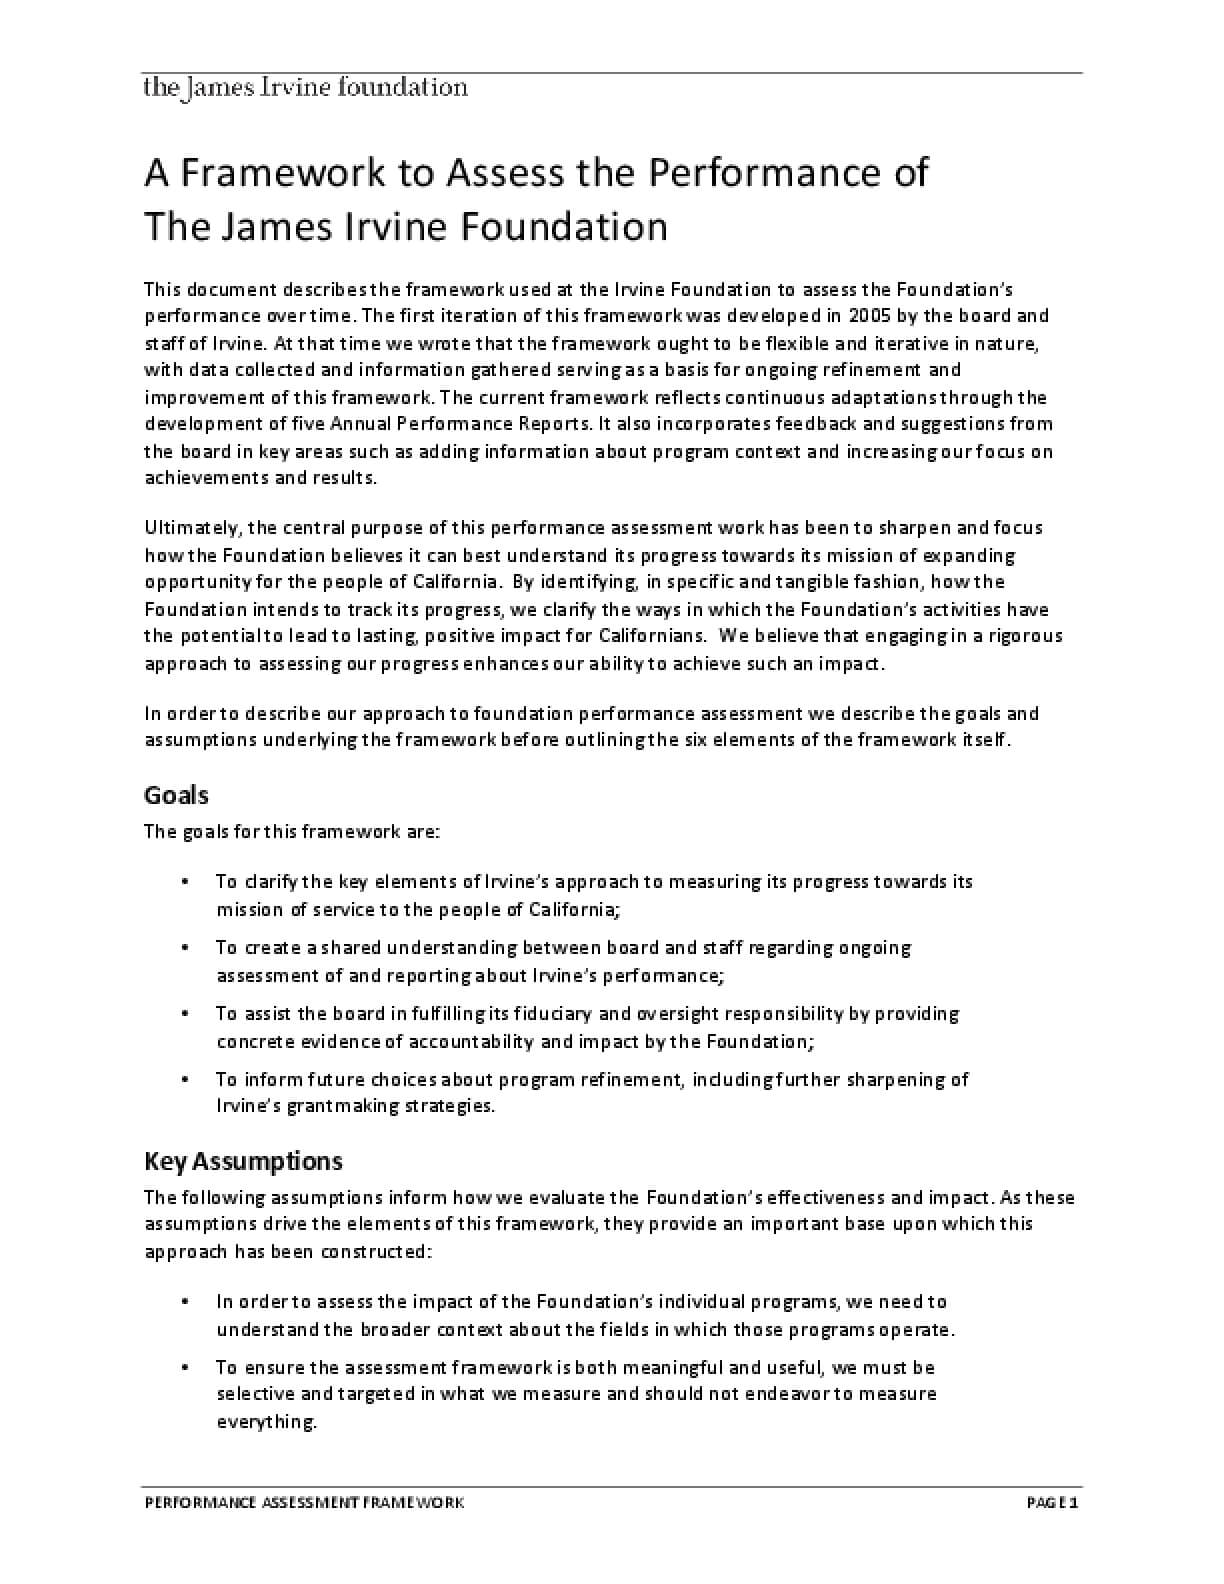 A Framework to Assess the Performance of The James Irvine Foundation